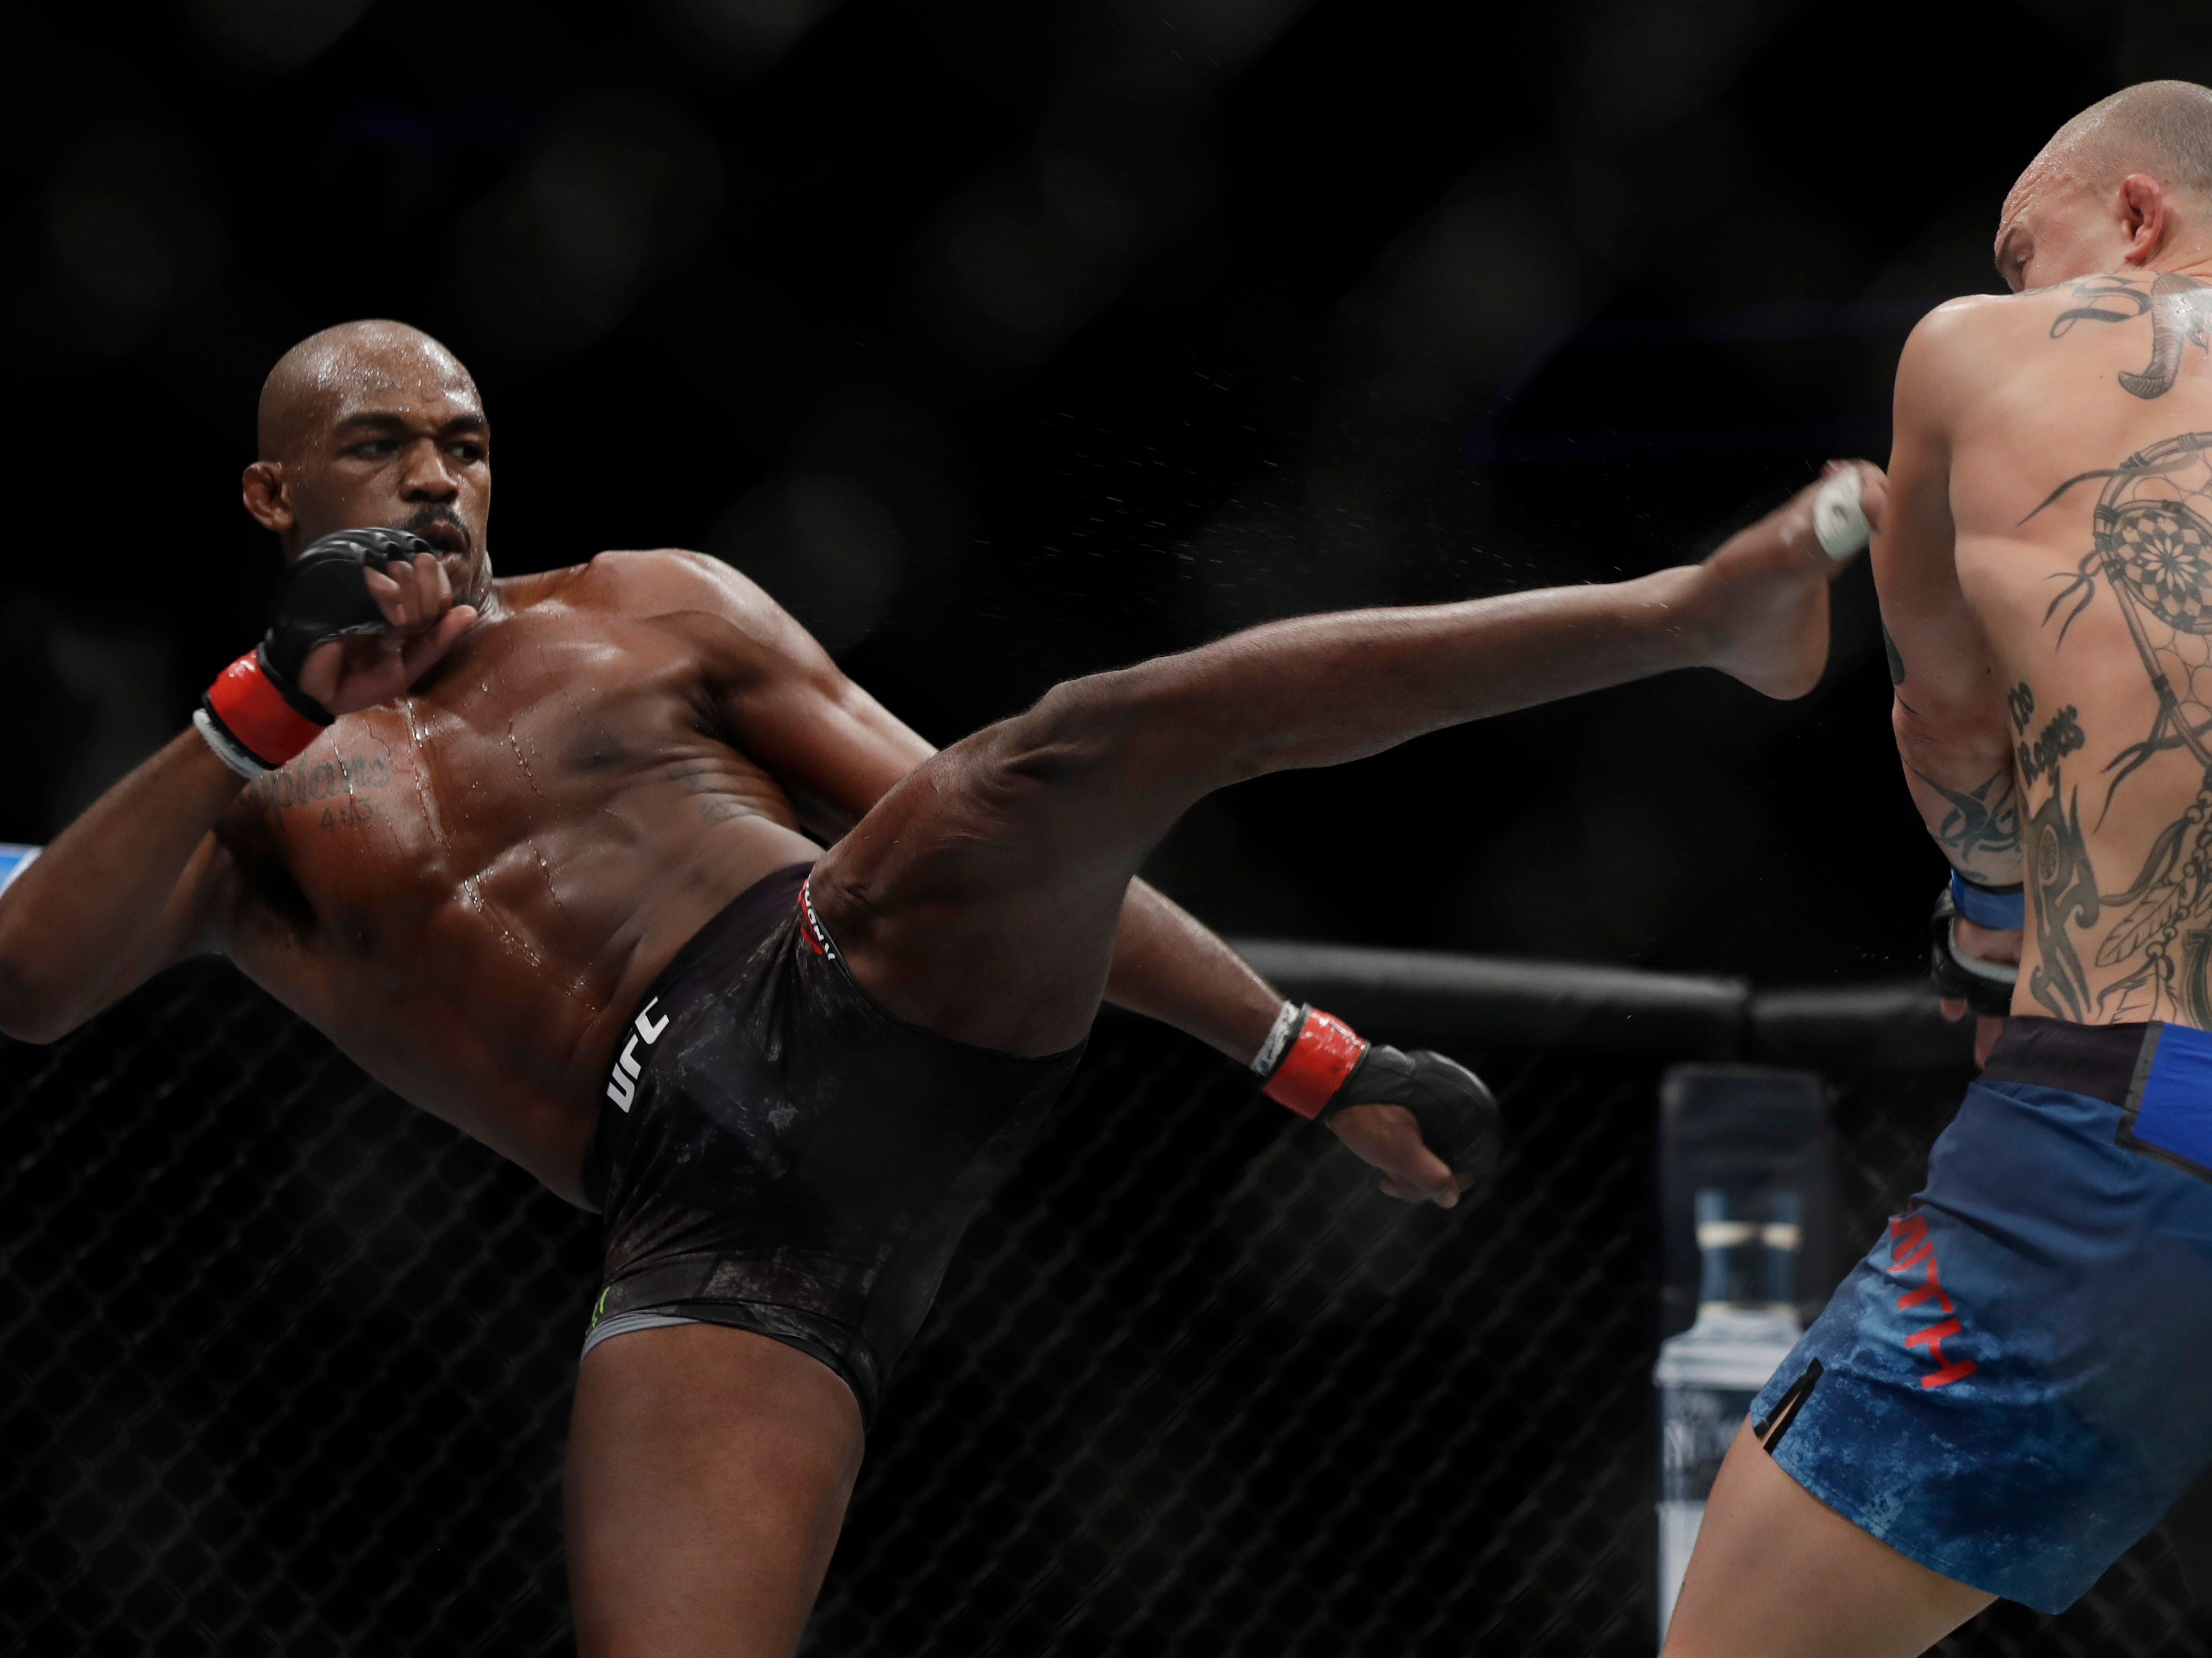 LAS VEGAS, NEVADA - MARCH 02: Jon Jones (L) attempts to kick Anthony Smith during their light heavyweight title bout during UFC 235 at T-Mobile Arena on March 02, 2019 in Las Vegas, Nevada. Jones won by unanimous decision.  (Photo by Isaac Brekken/Getty Images )